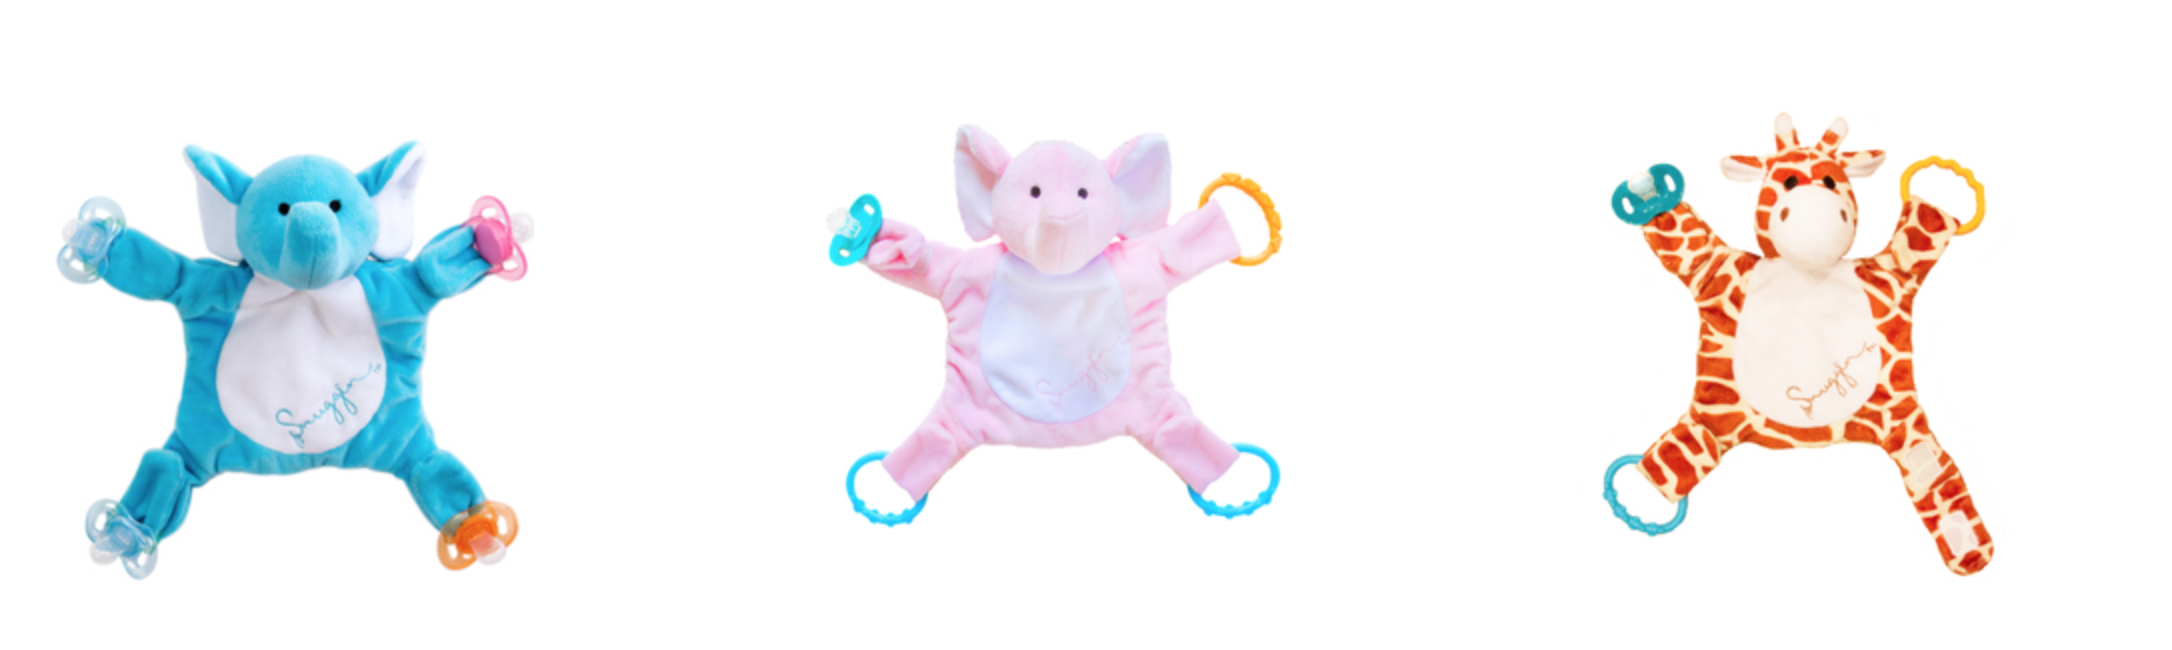 snuggin_baby_product.png